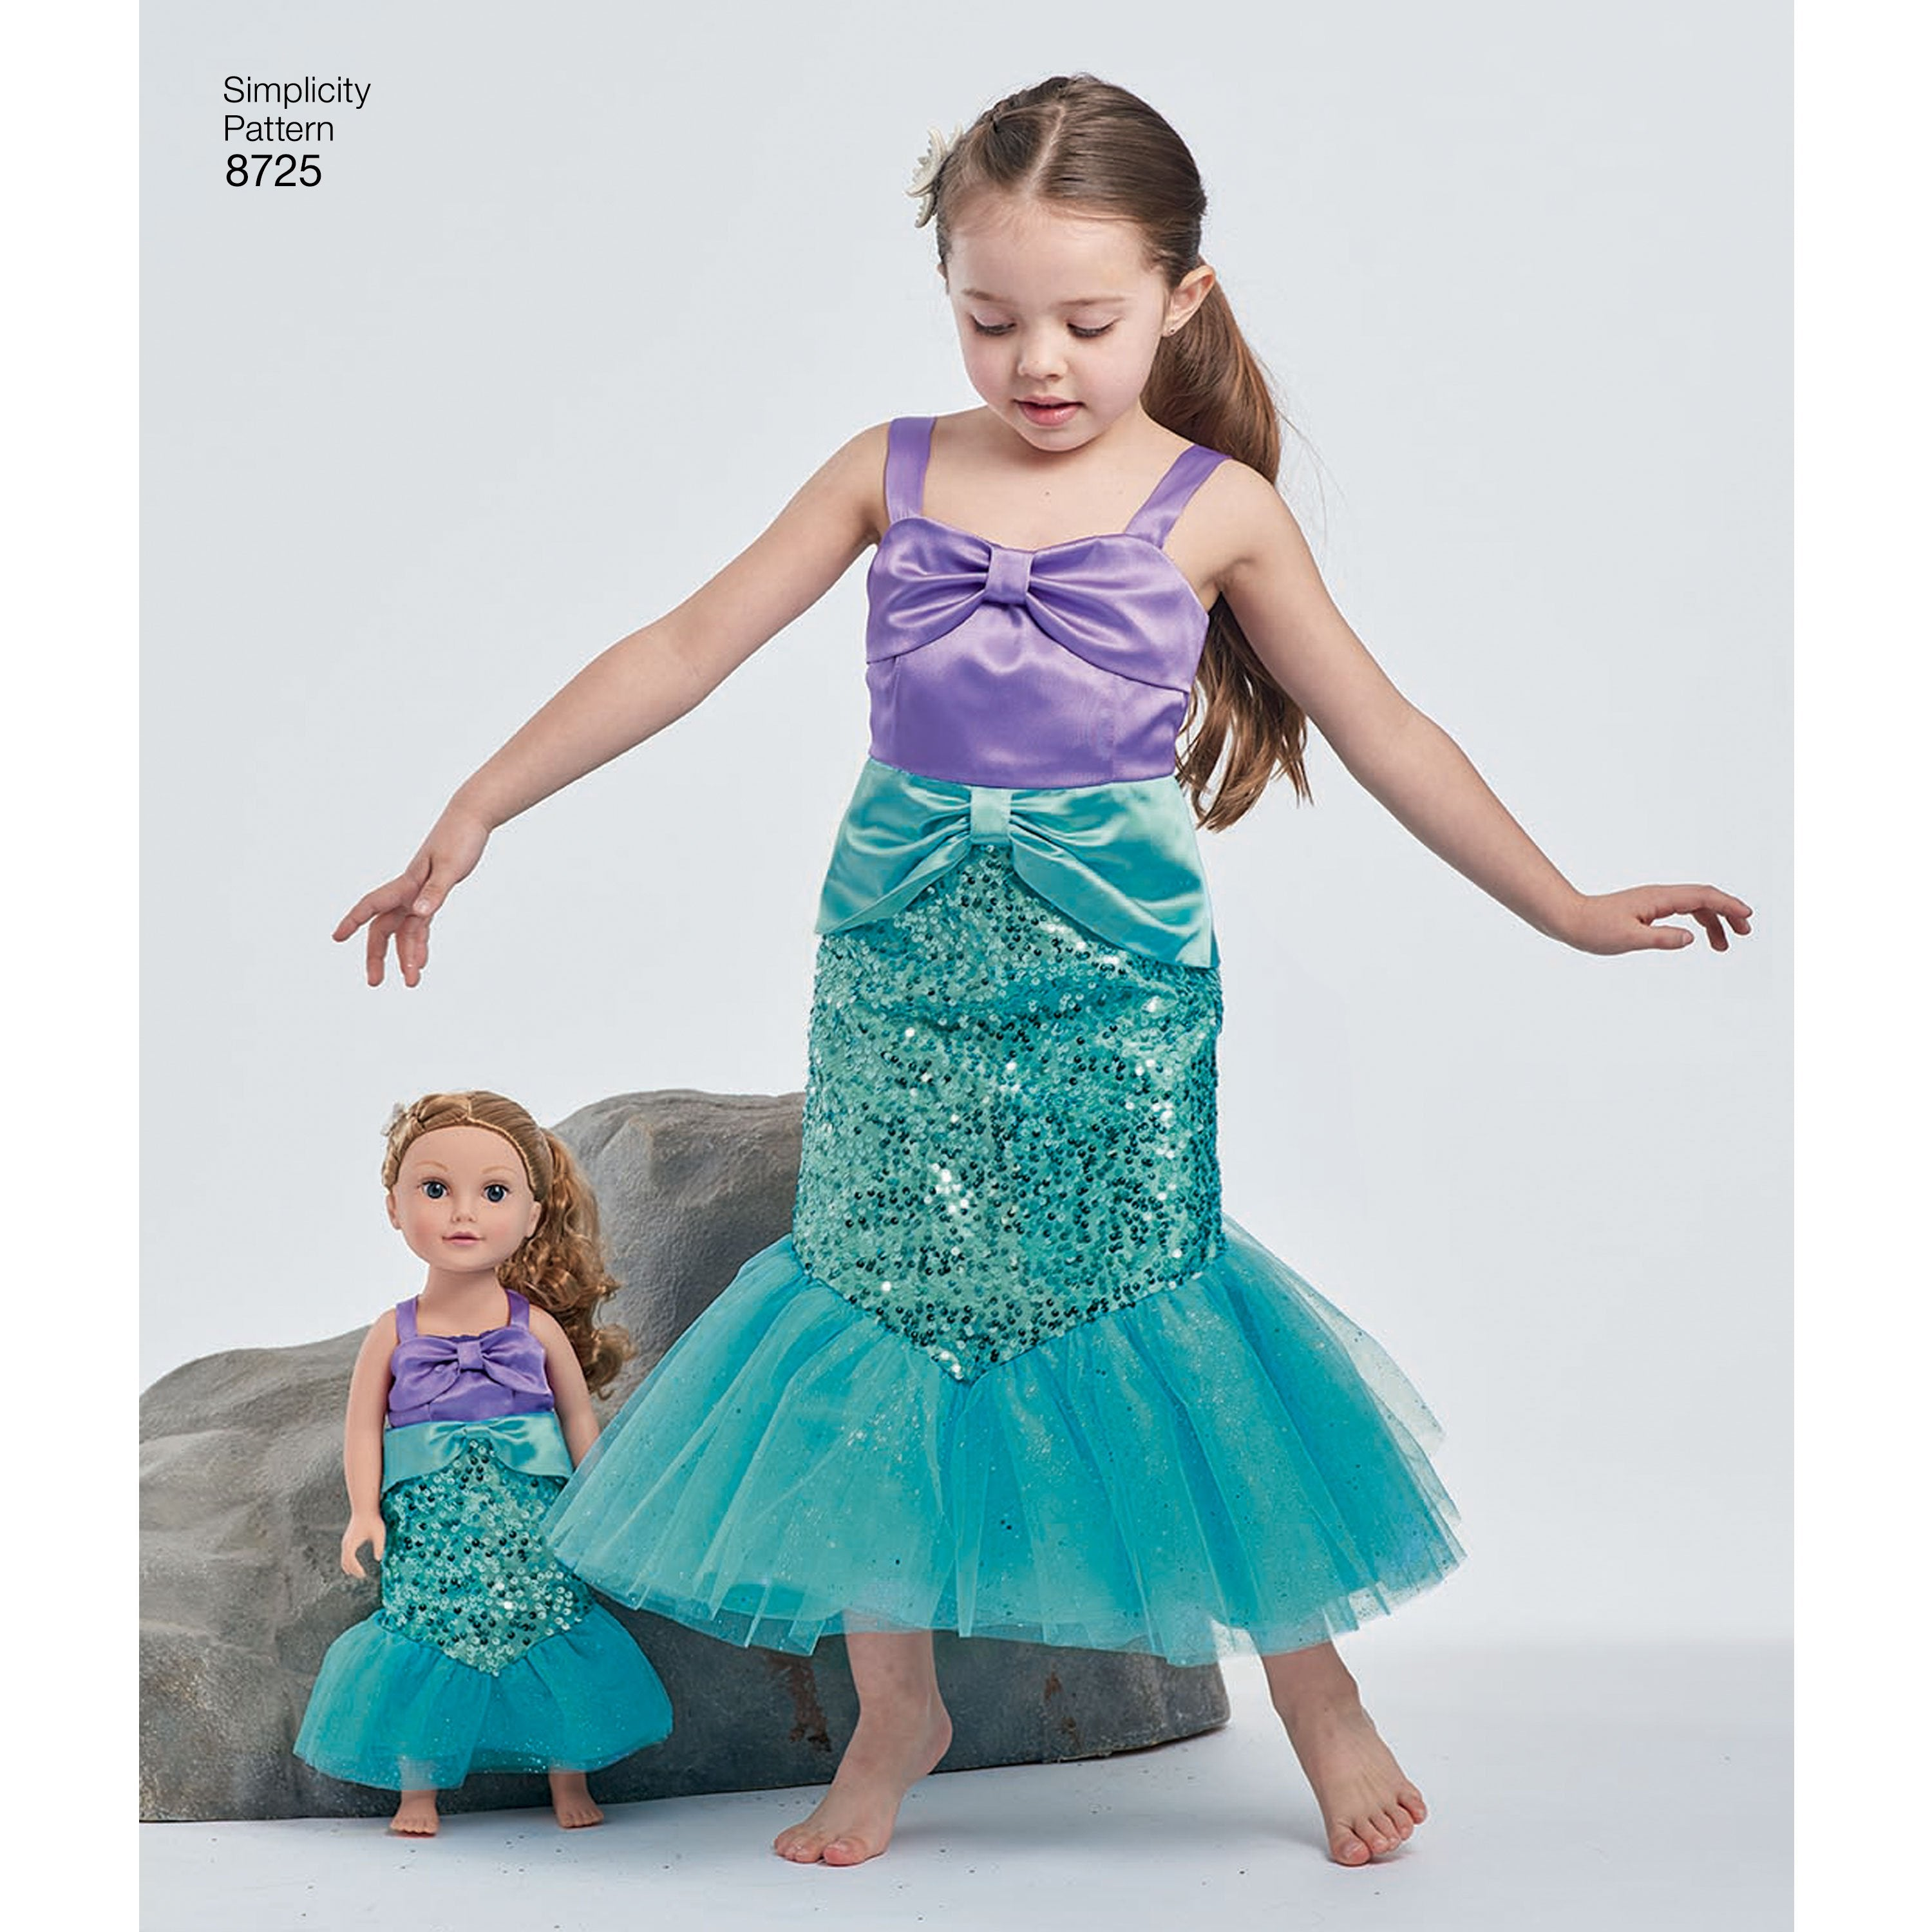 S8725 Girl's and Doll's Little Mermaid Costumes